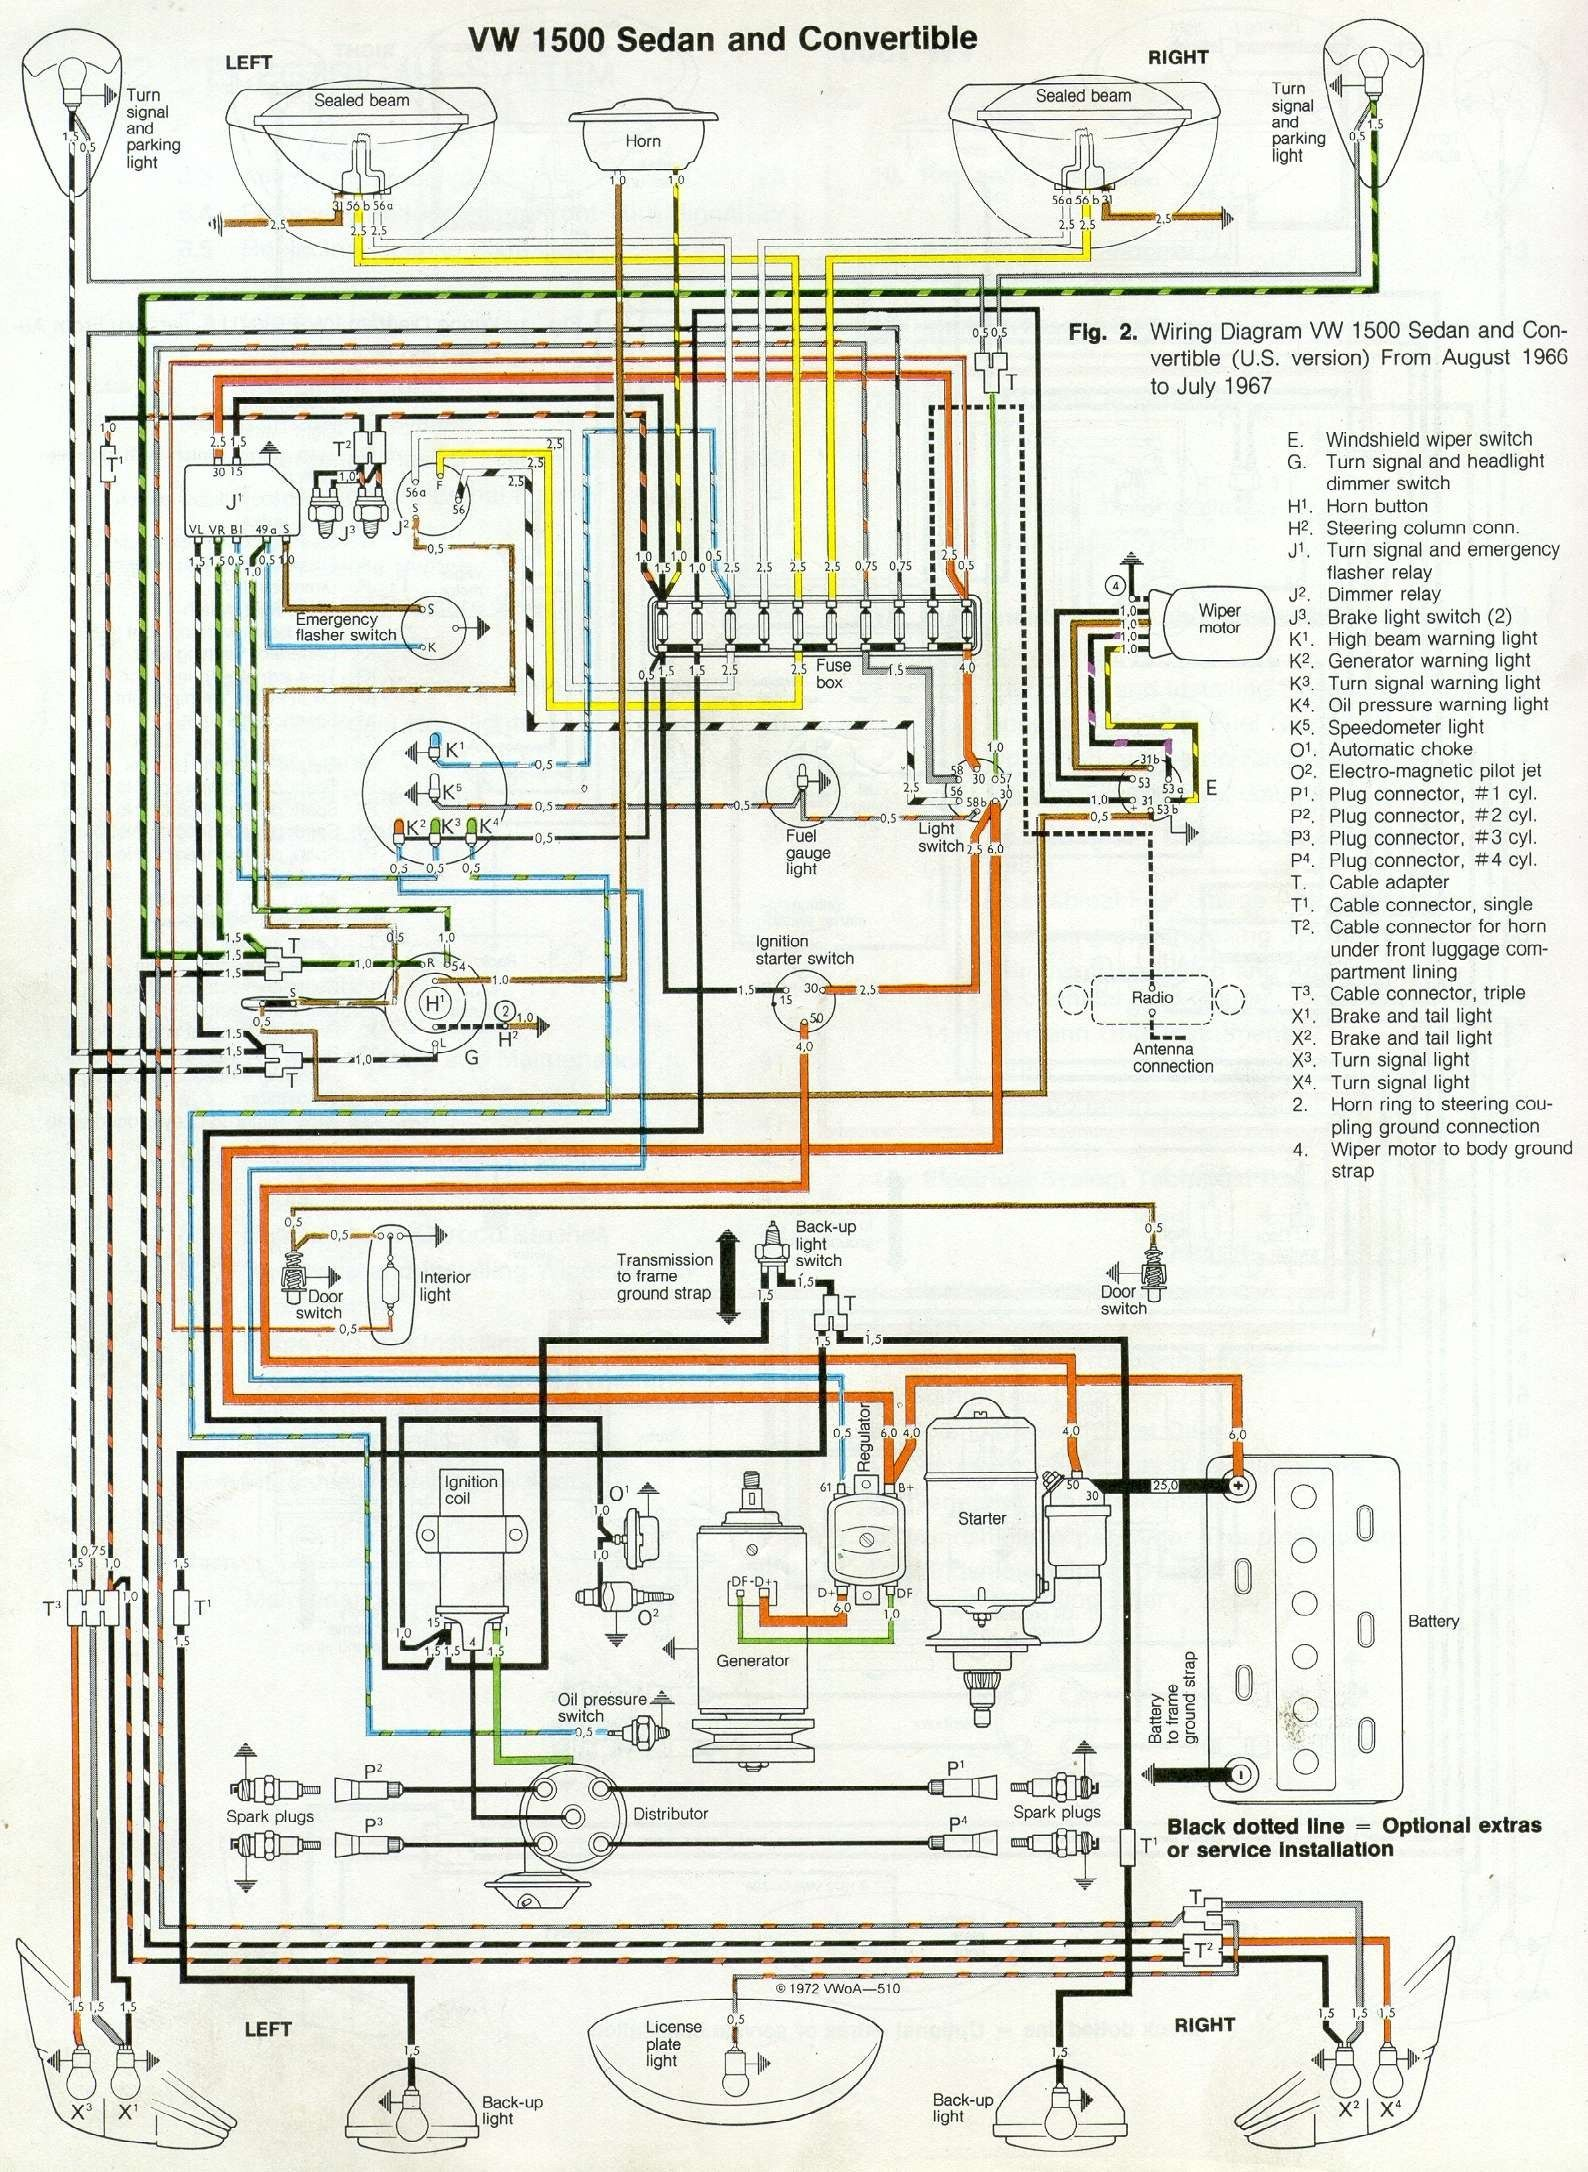 66 and 67 vw beetle wiring diagram volkswagen pinterest vw rh pinterest com 1969 vw beetle turn signal wiring diagram 1969 vw beetle turn signal wiring diagram